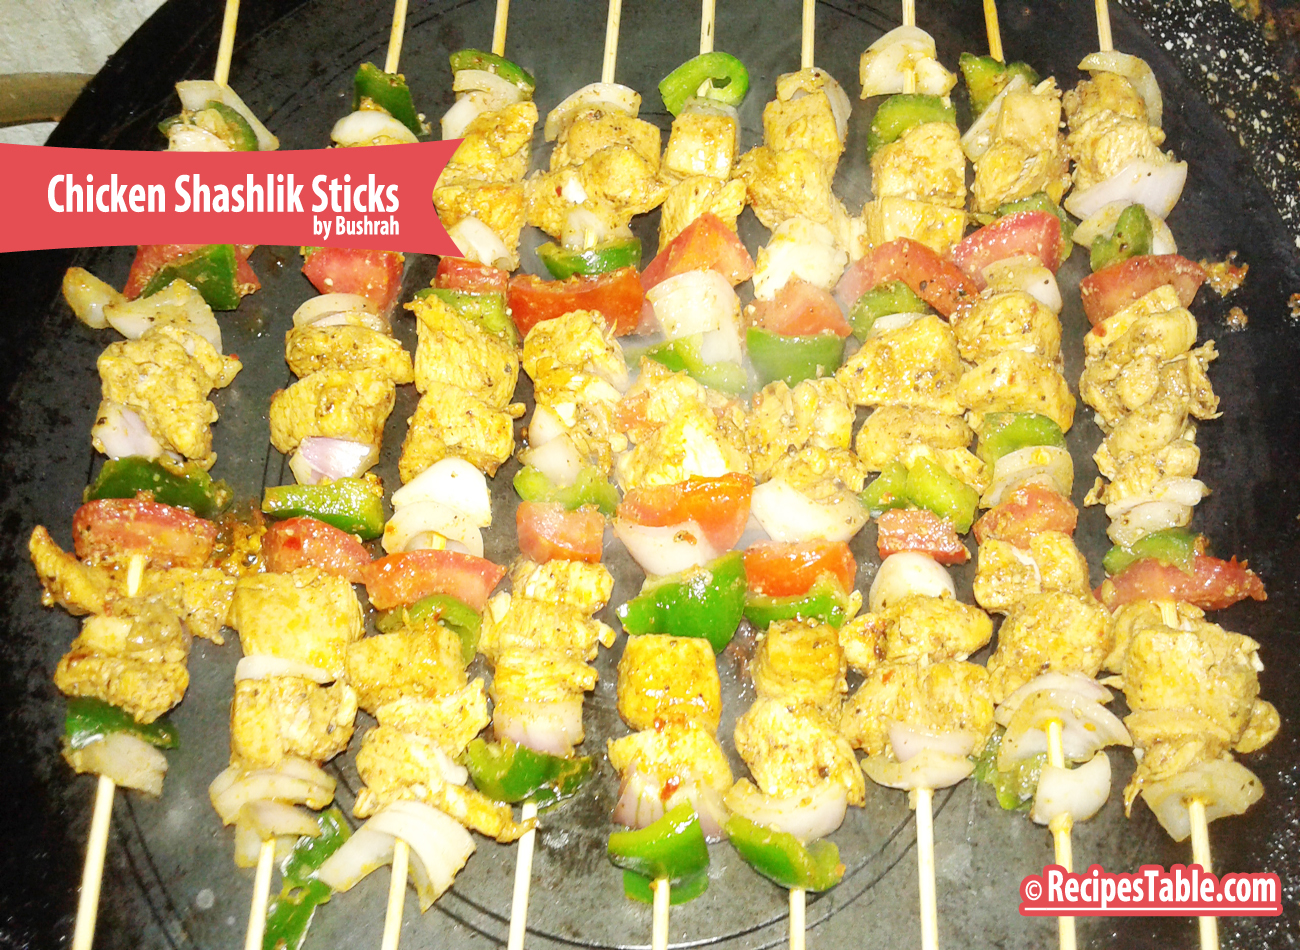 Chicken Shashlik Sticks recipe